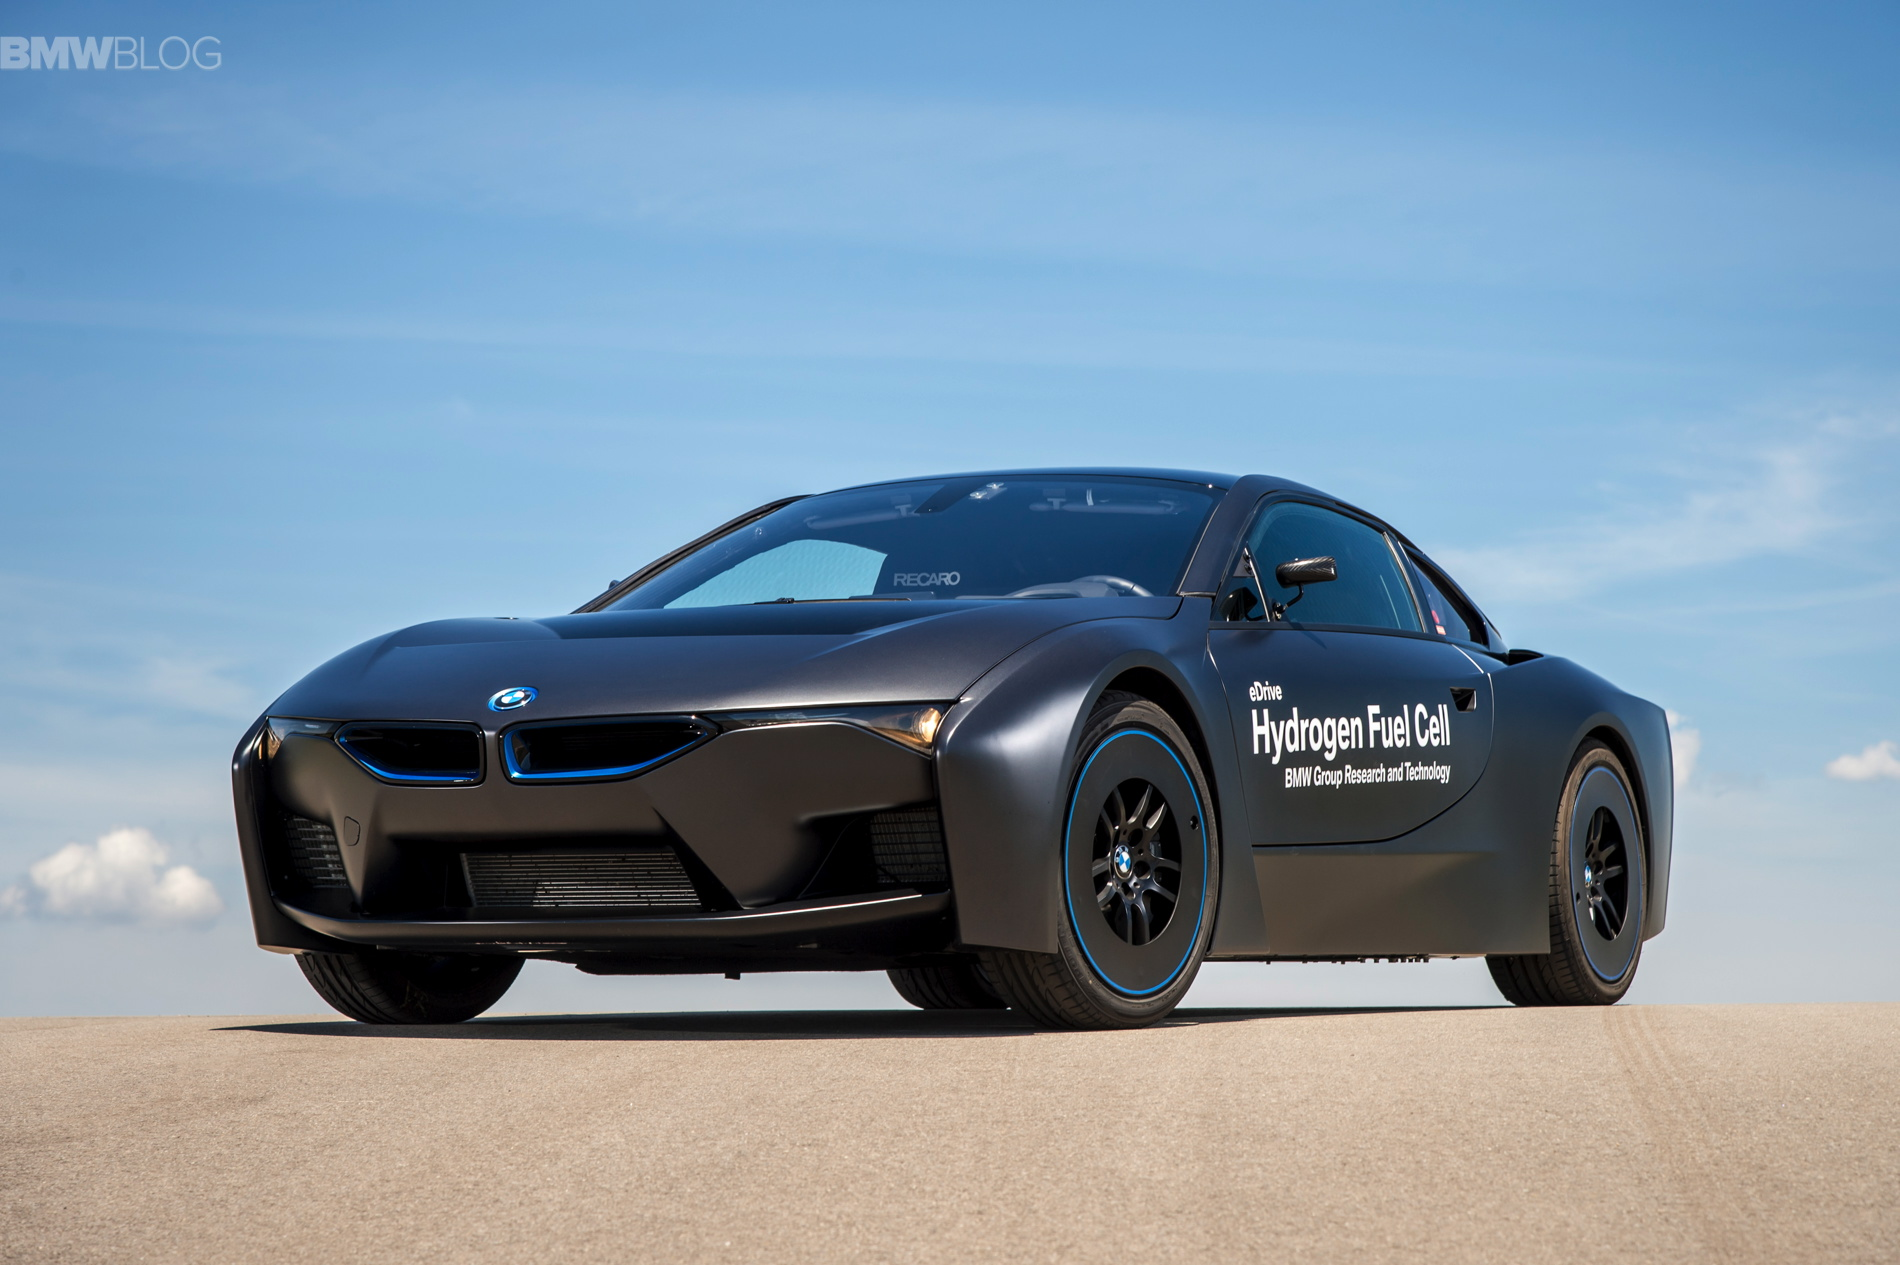 BMW i8 hydrogen fuel cell images 19